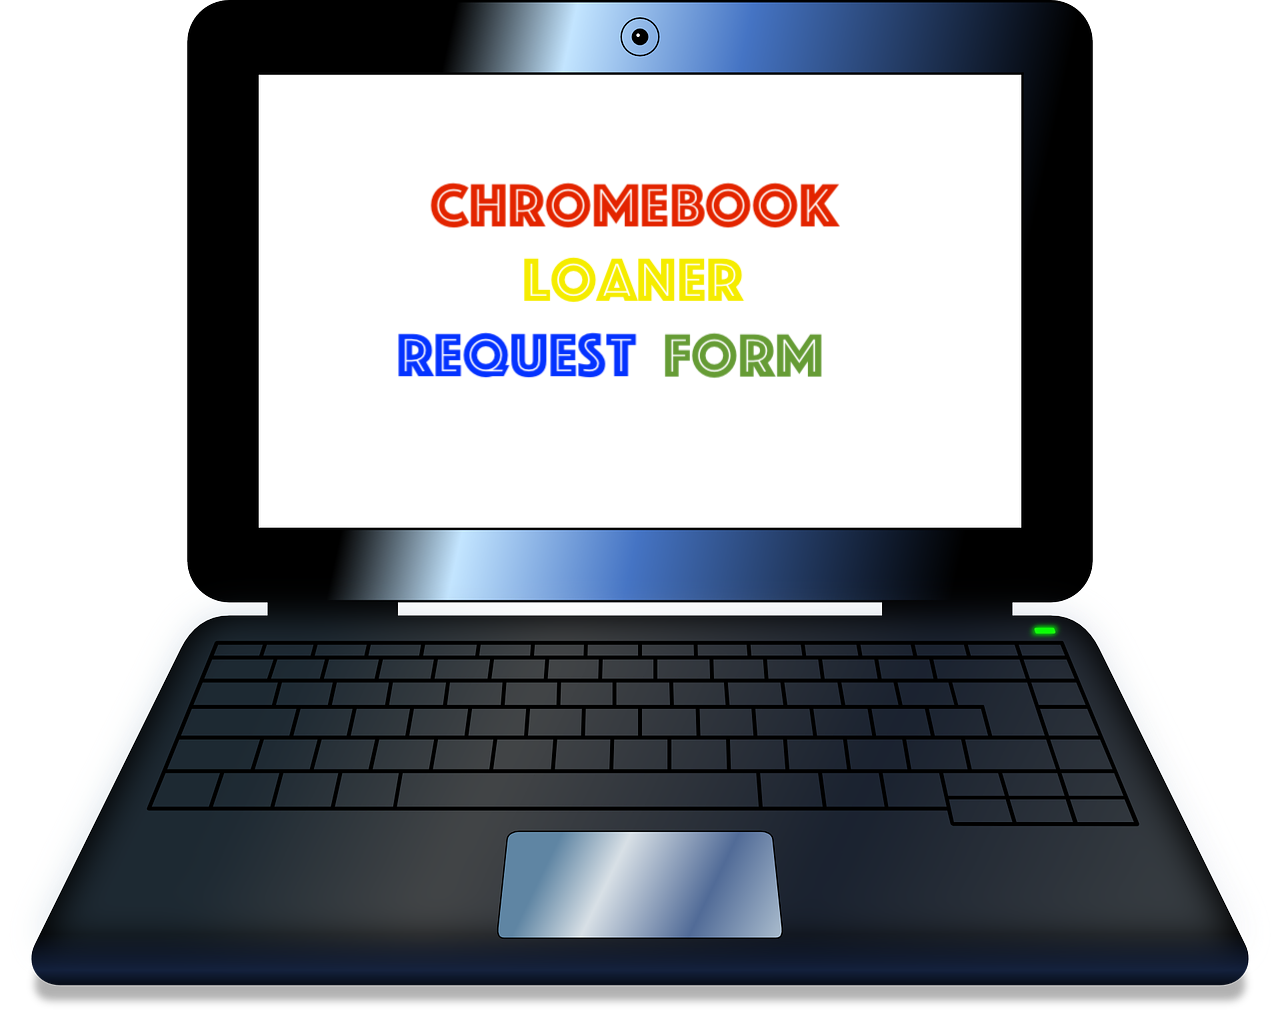 Chromebook Loaner Request Form